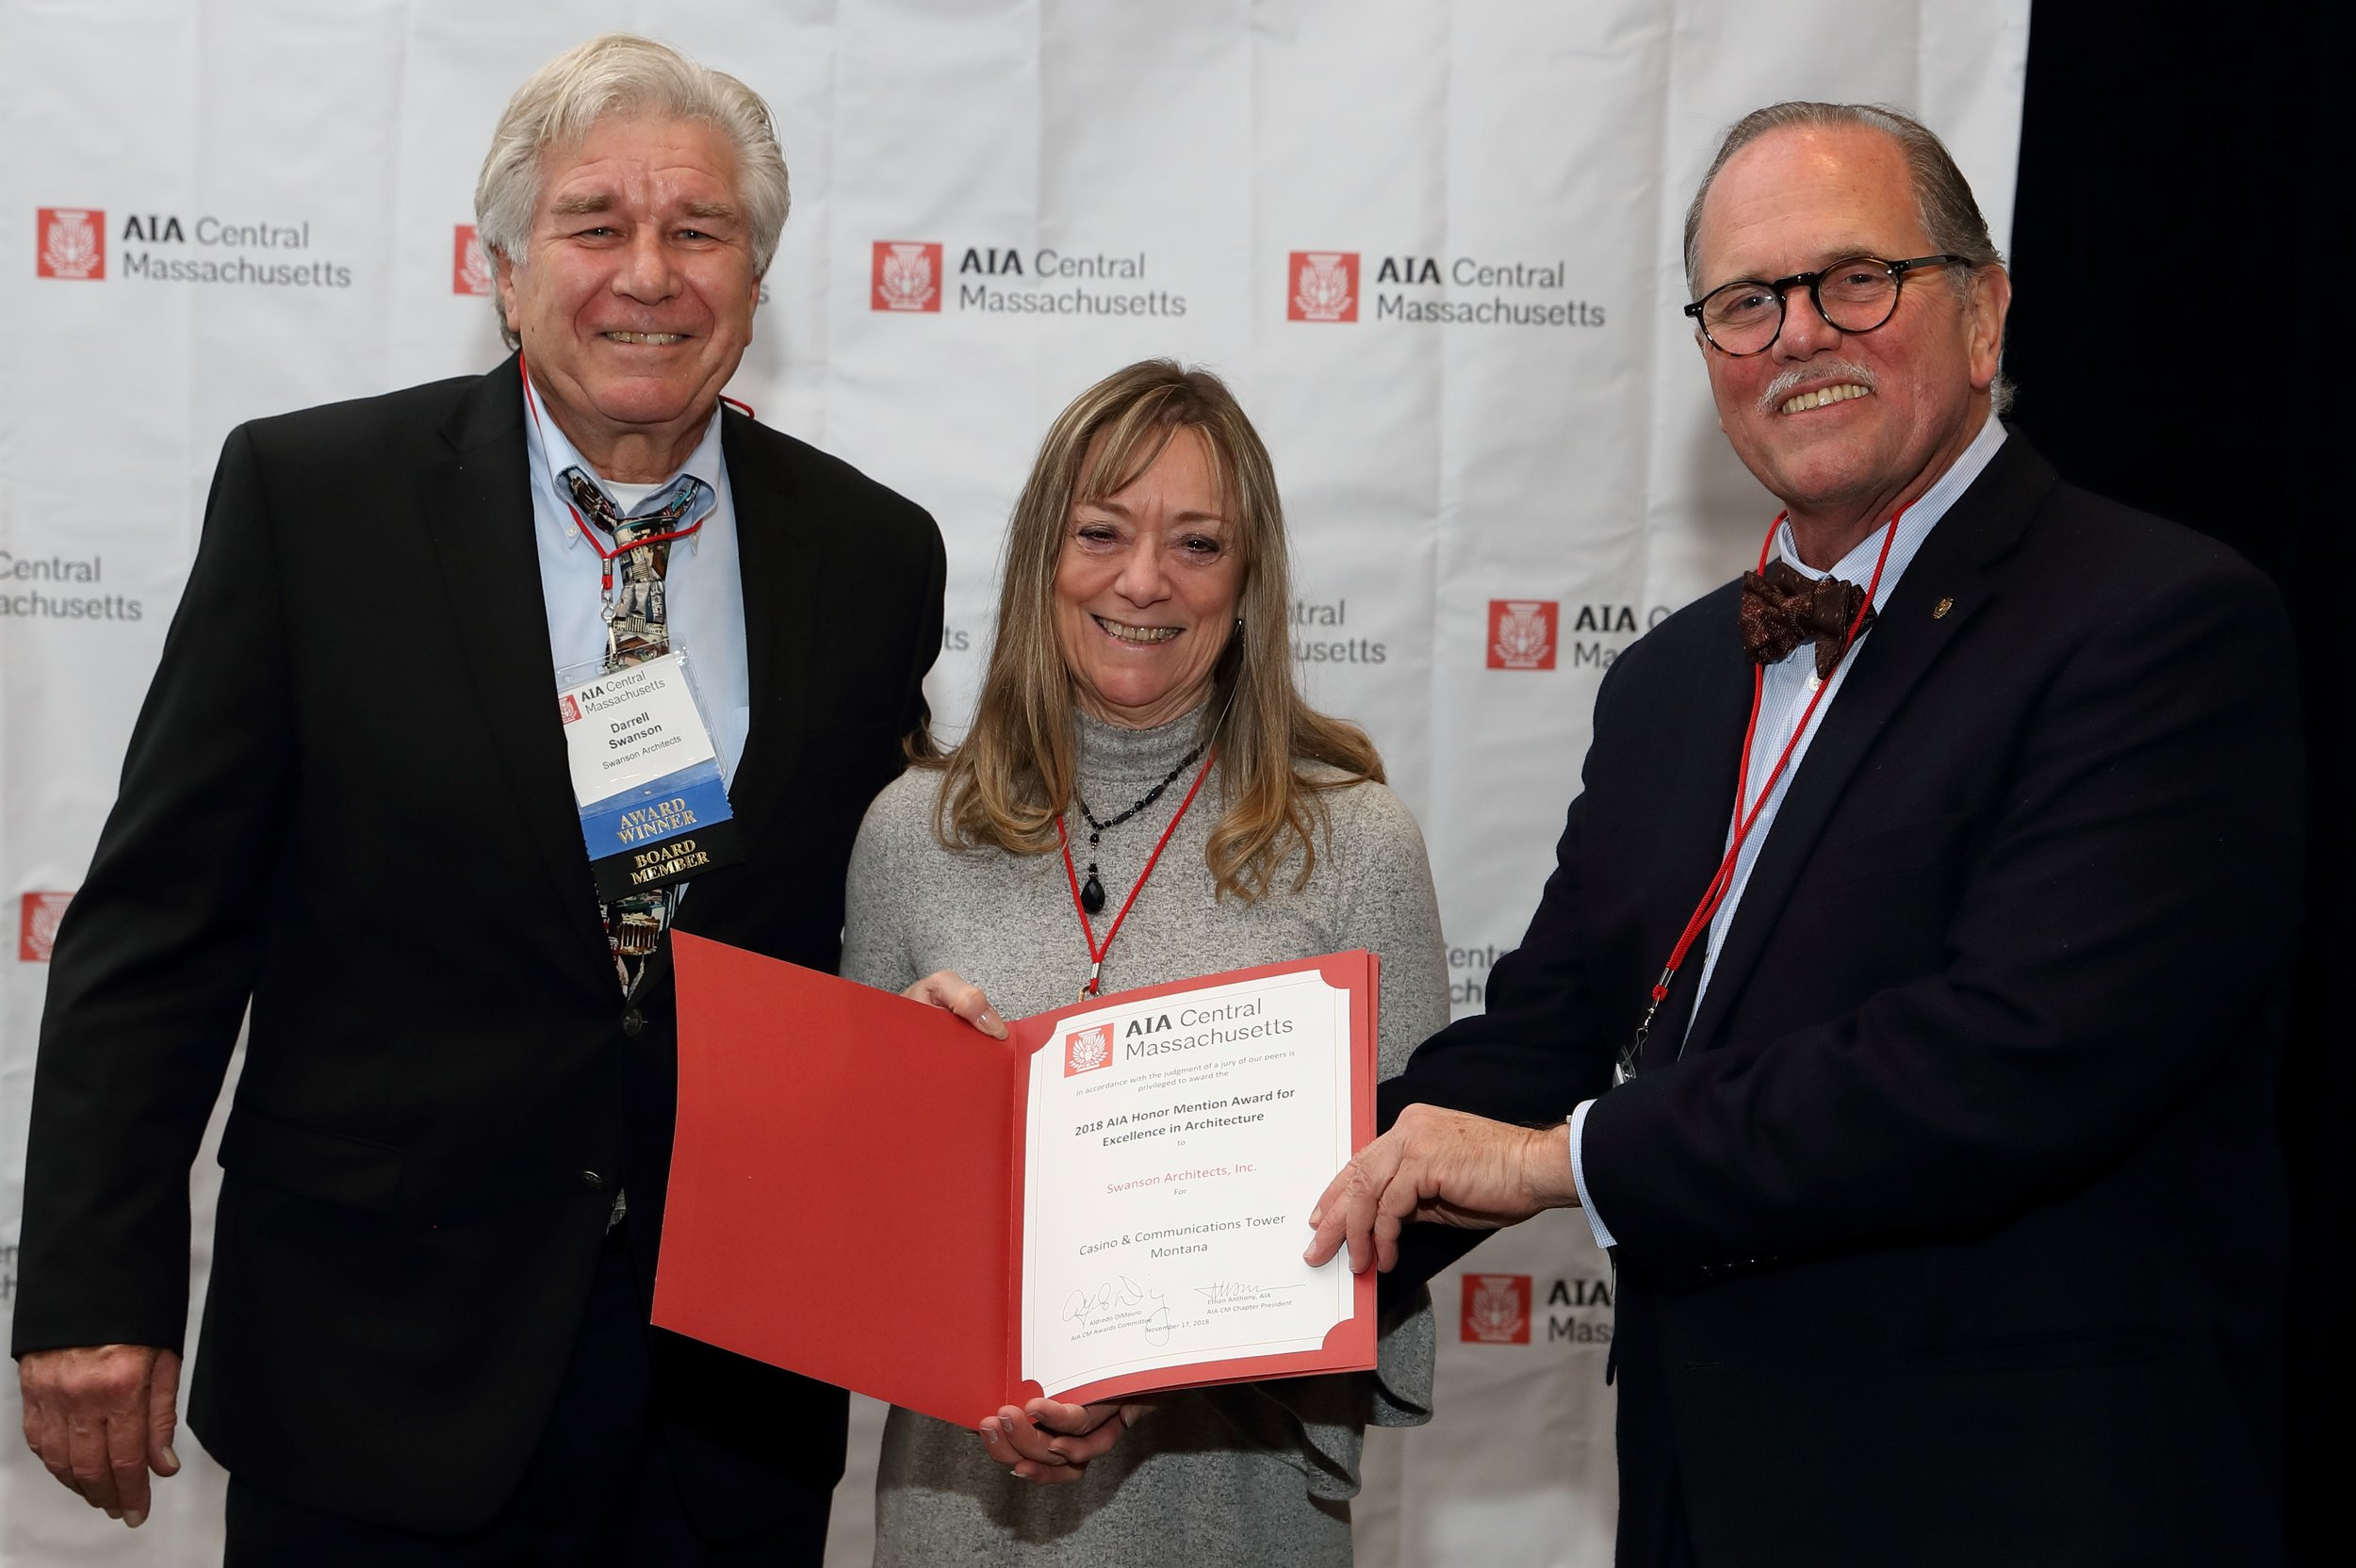 Darrell Swanson, of Swanson Architects Inc., received the AIACM Honor Mention Award for Excellence in Architecture. Pictured from left: Darrell Swanson, Martia Swanson and Ethan Anthony.